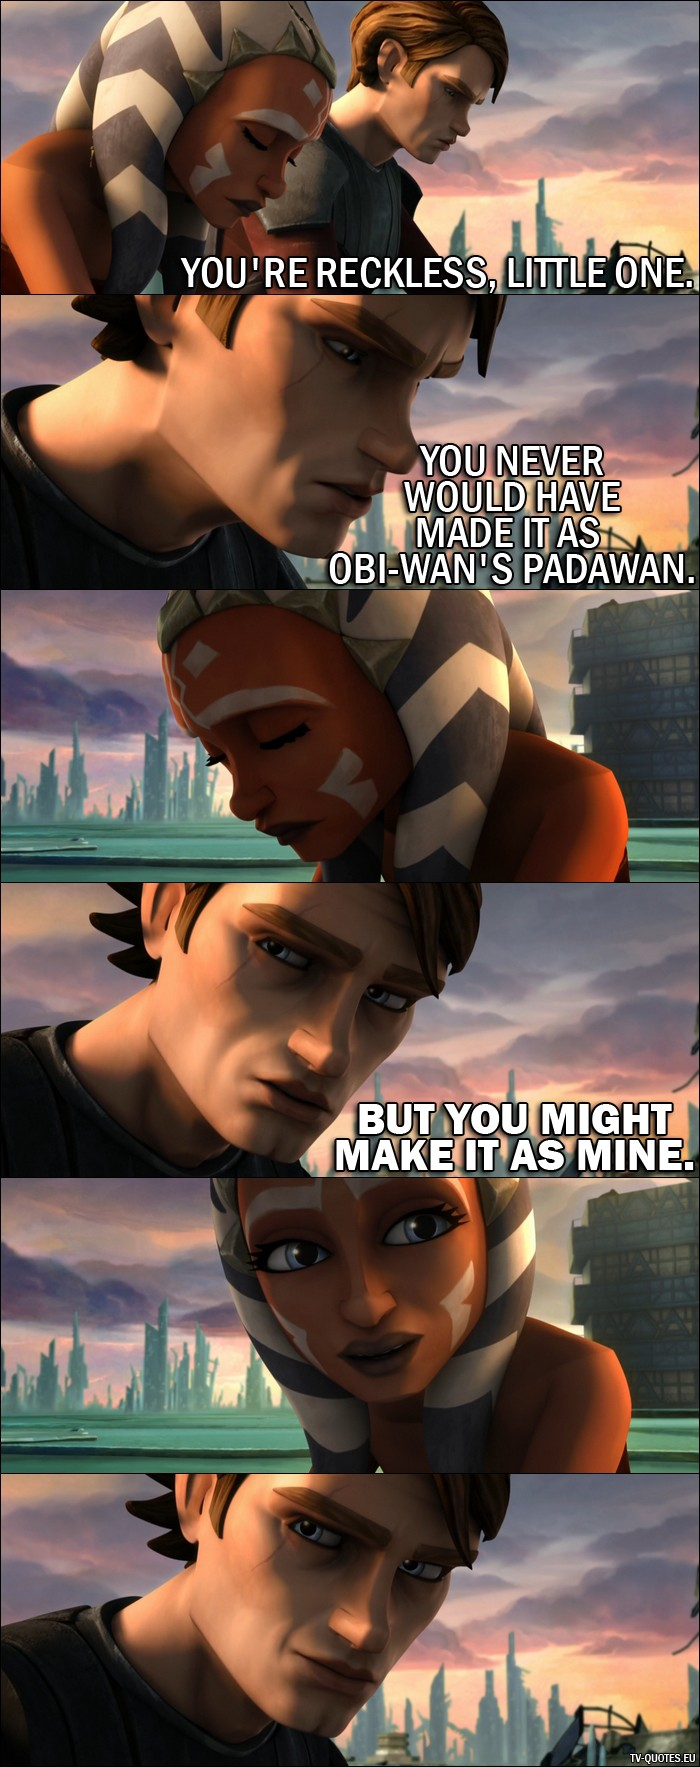 Star Wars: The Clone Wars quote from the movie - Anakin Skywalker: You're reckless, little one. You never would have made it as Obi-Wan's Padawan. But you might make it as mine.